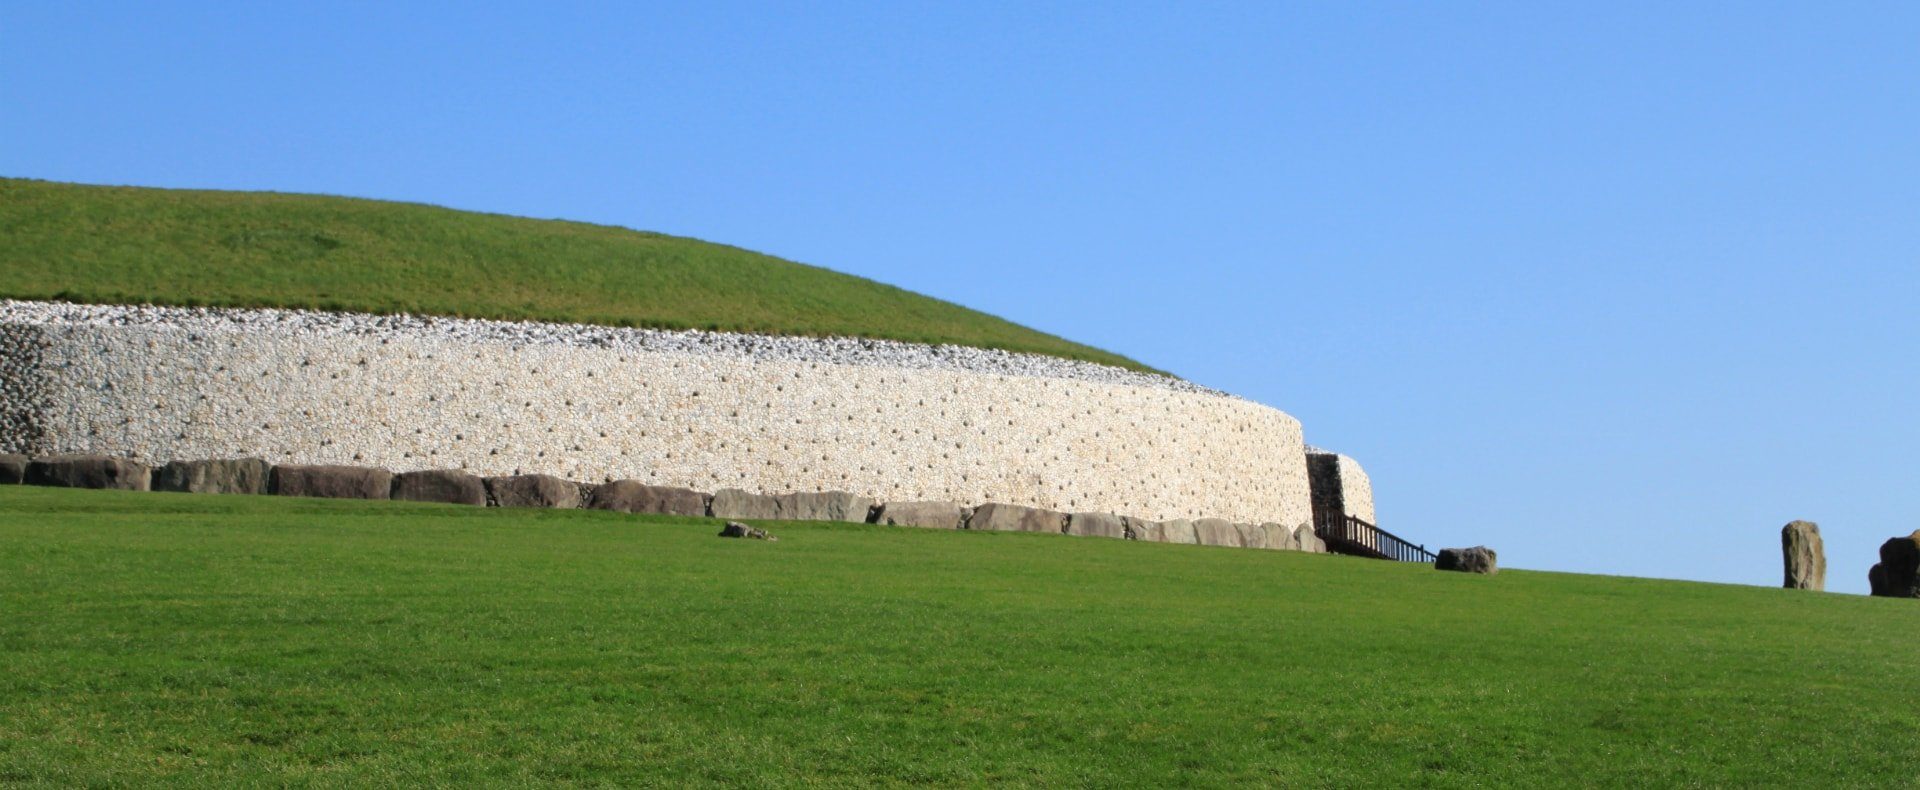 Newgrange Boyne Valley, Ireland